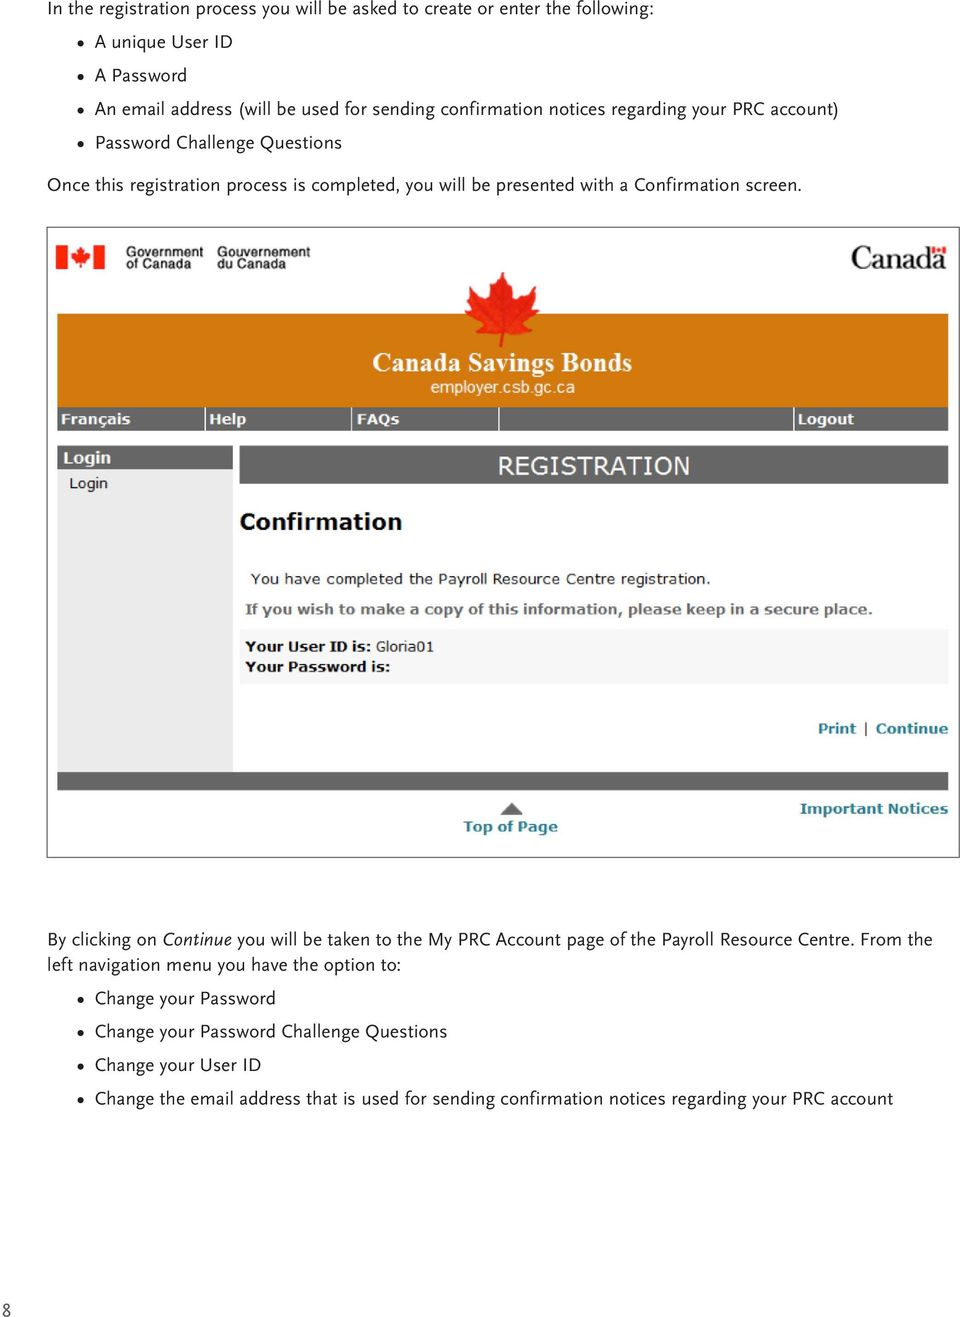 By clicking on Continue you will be taken to the My PRC Account page of the Payroll Resource Centre.